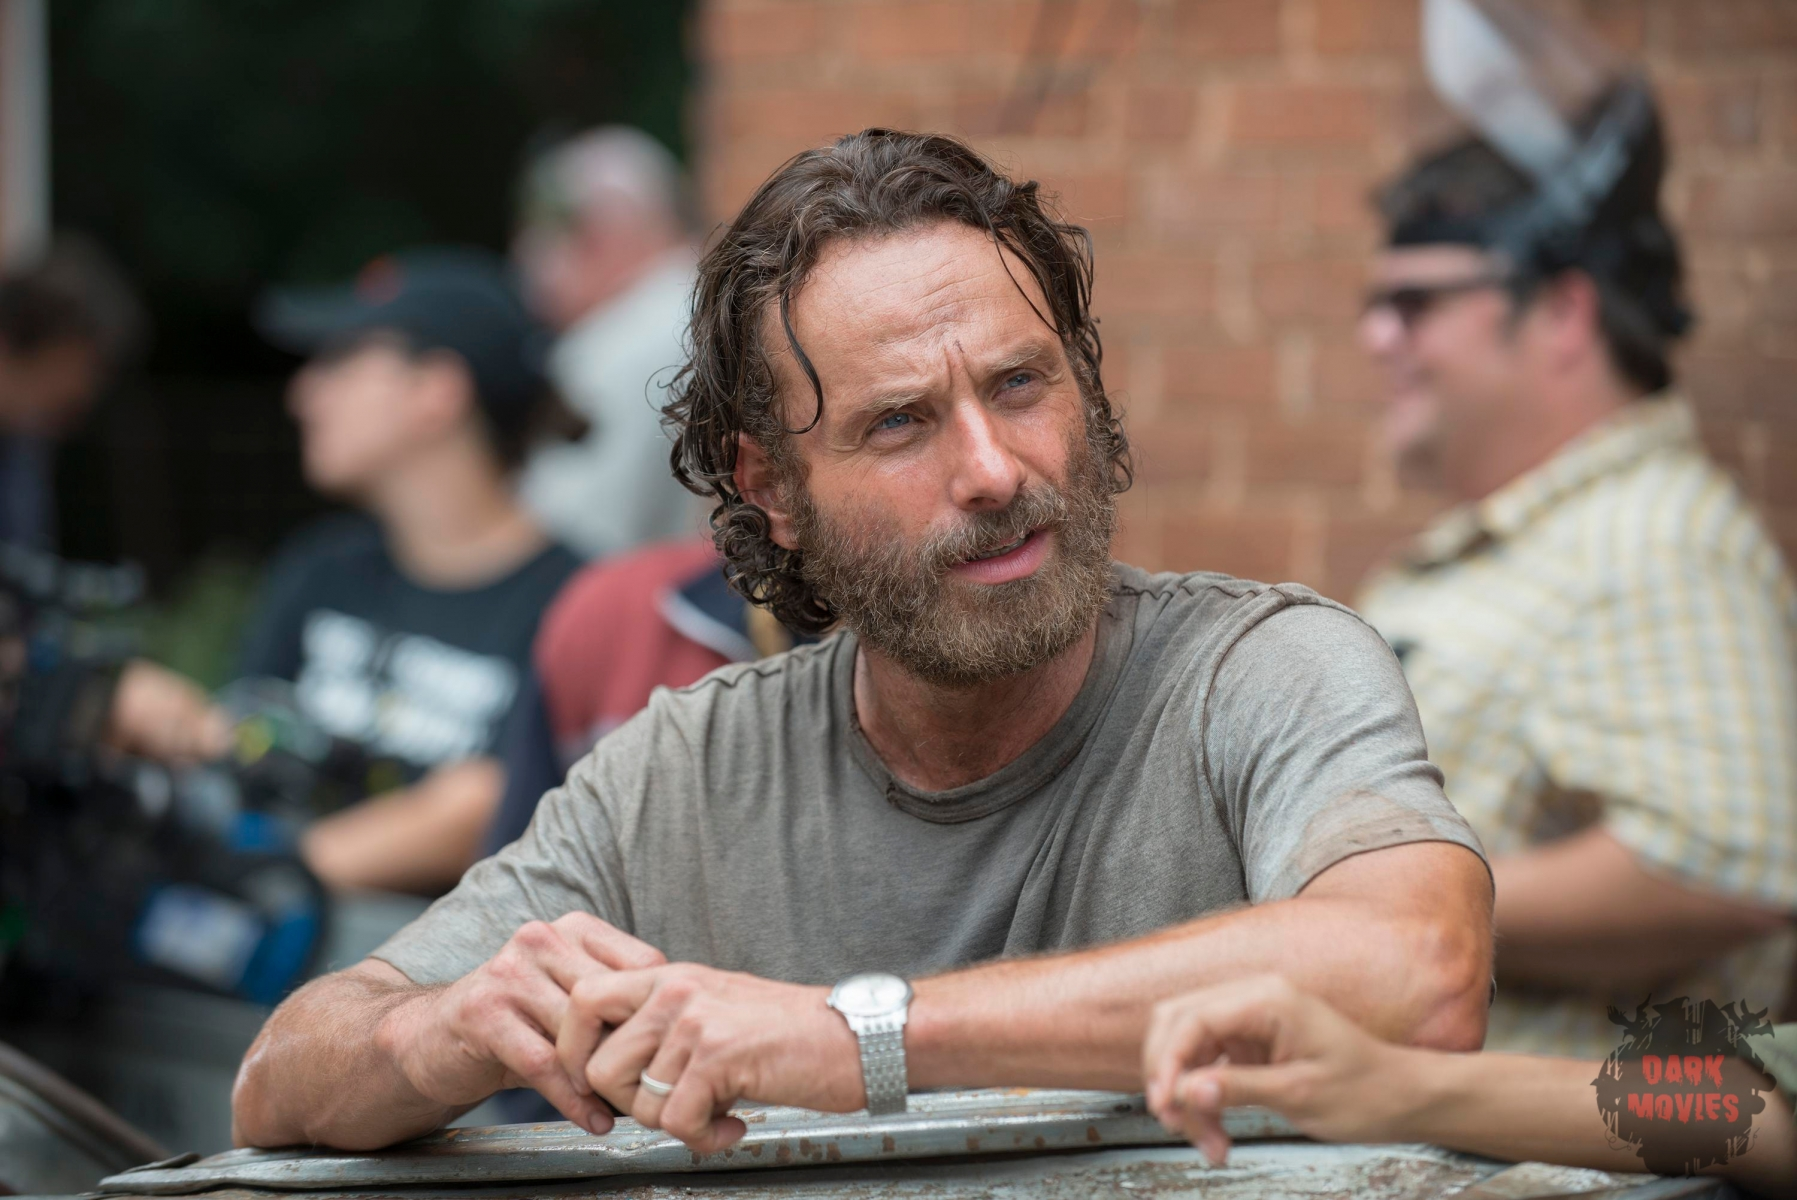 Andrew Lincoln - The Walking Dead _ Season 5, Episode 7 _ BTS - Photo Credit: Gene Page/AMC